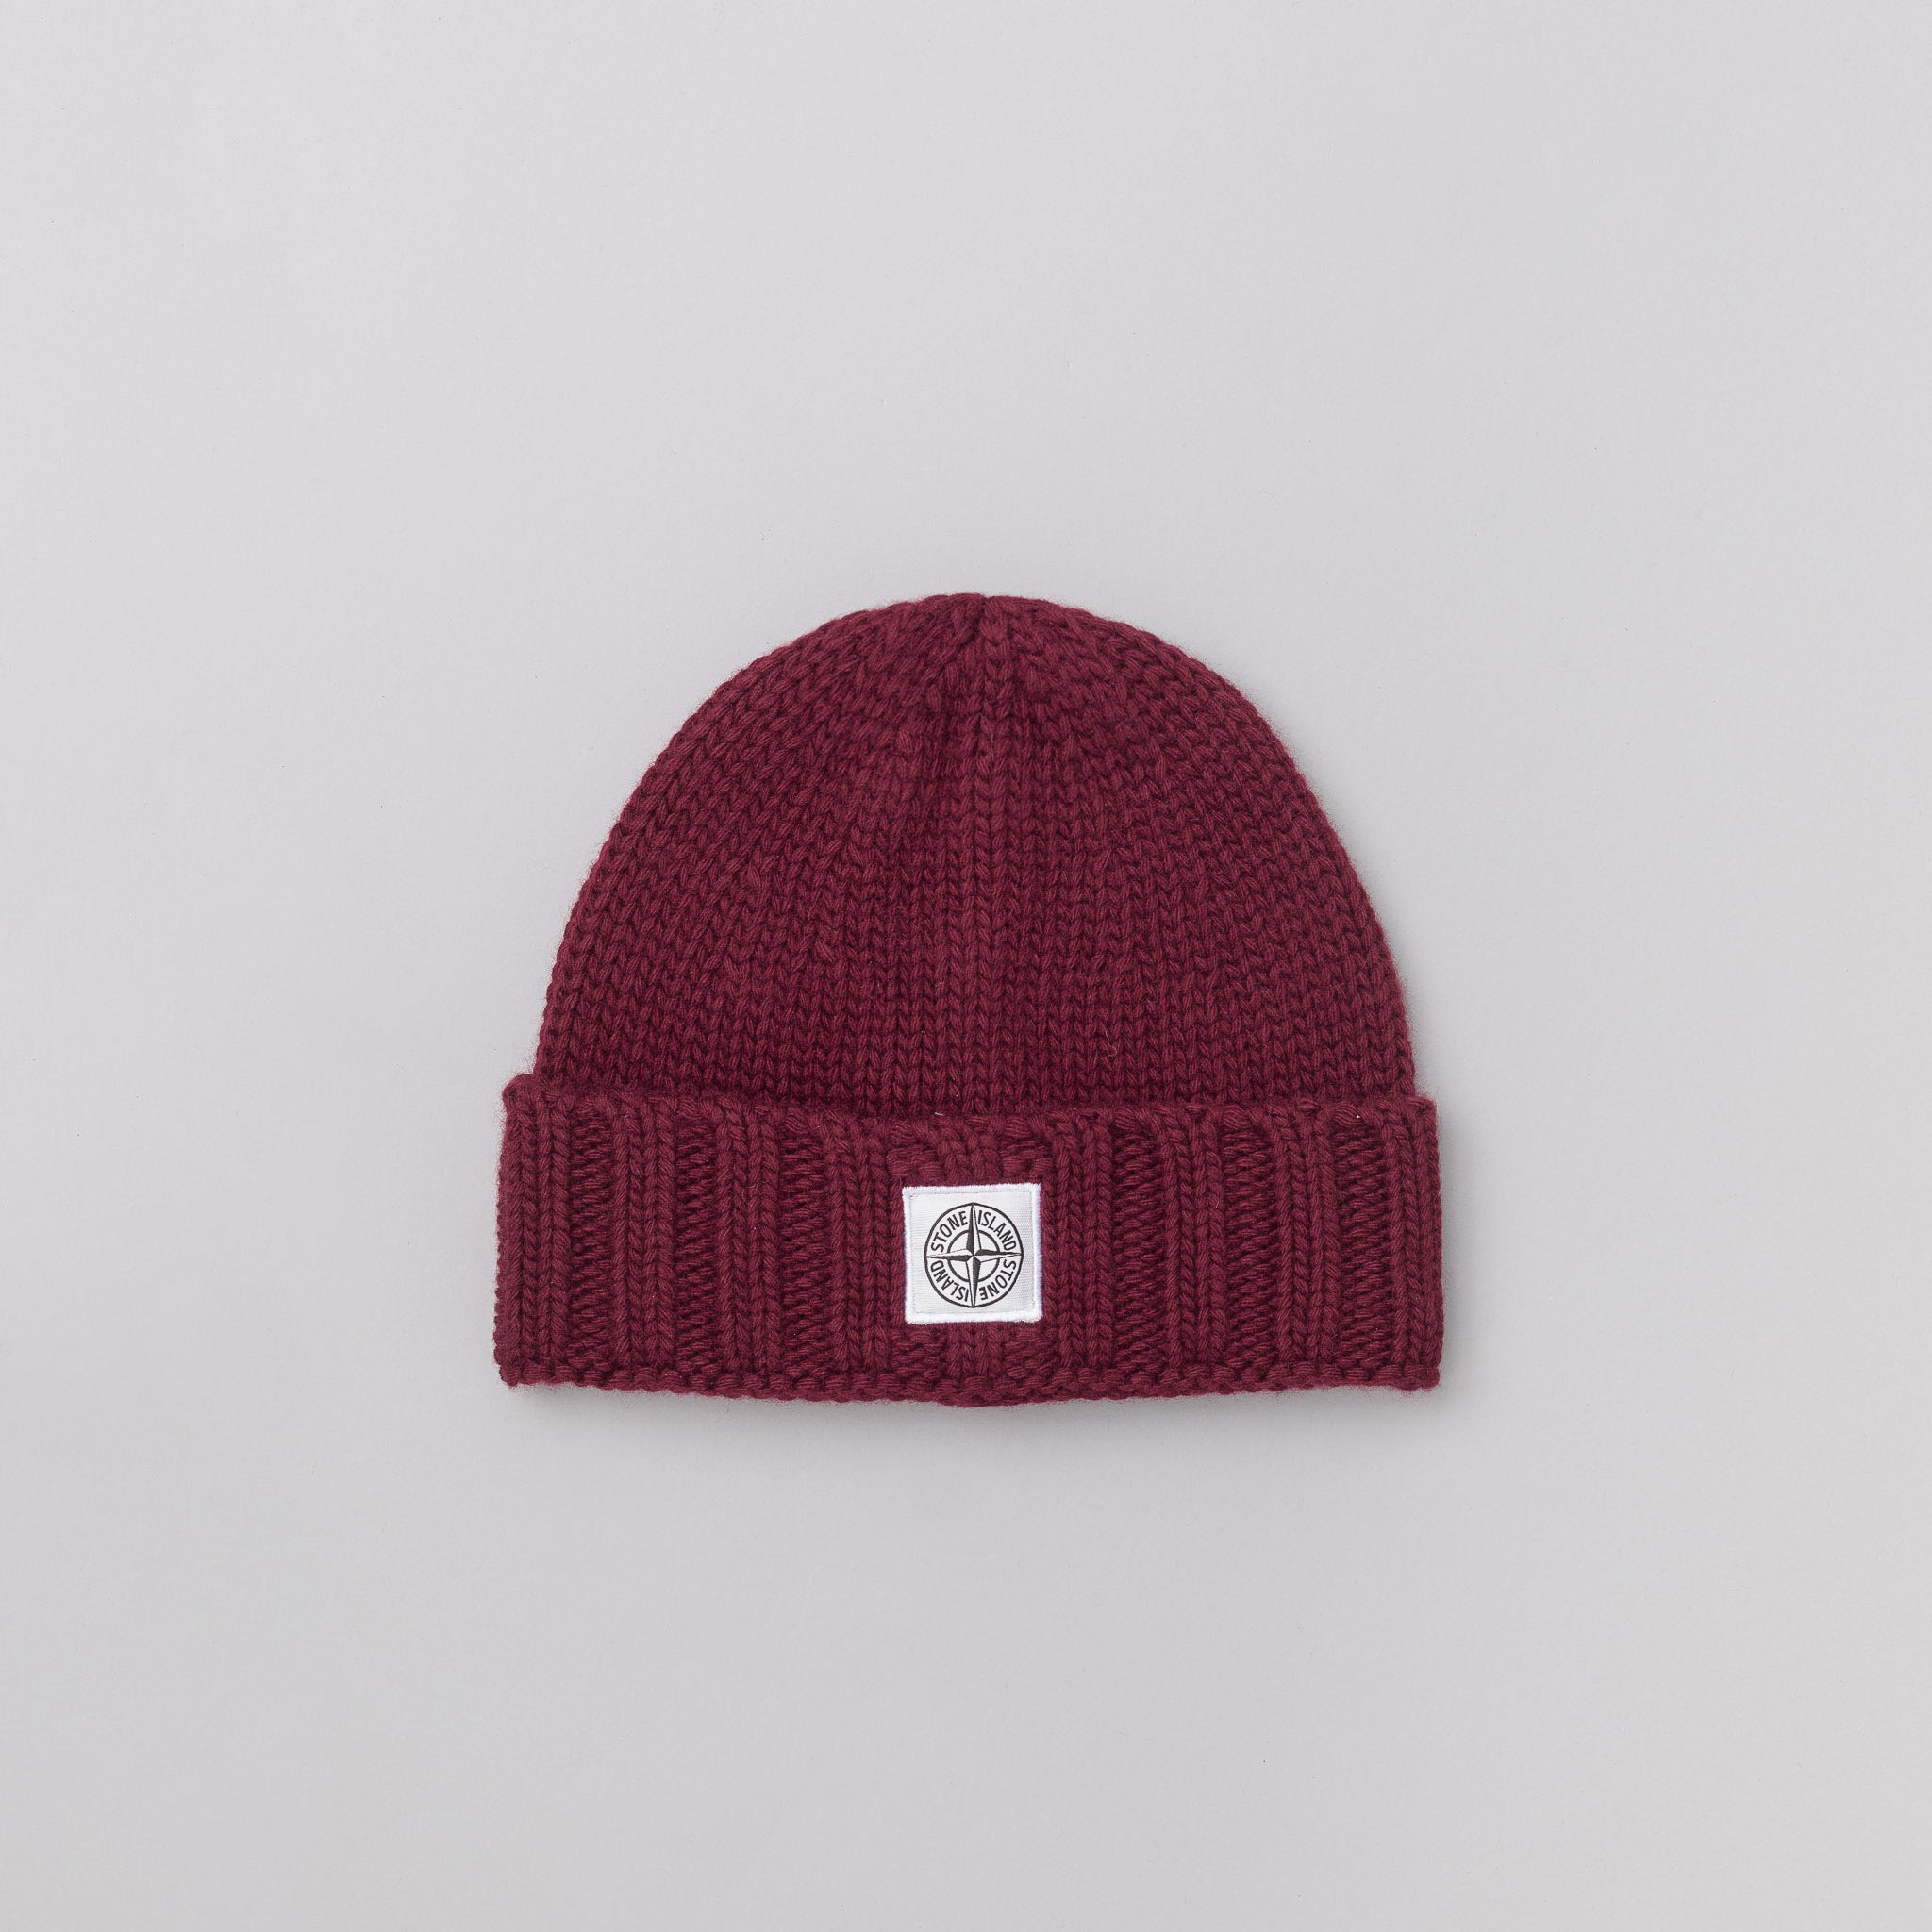 N07C1 Knit Logo Cap in Burgundy